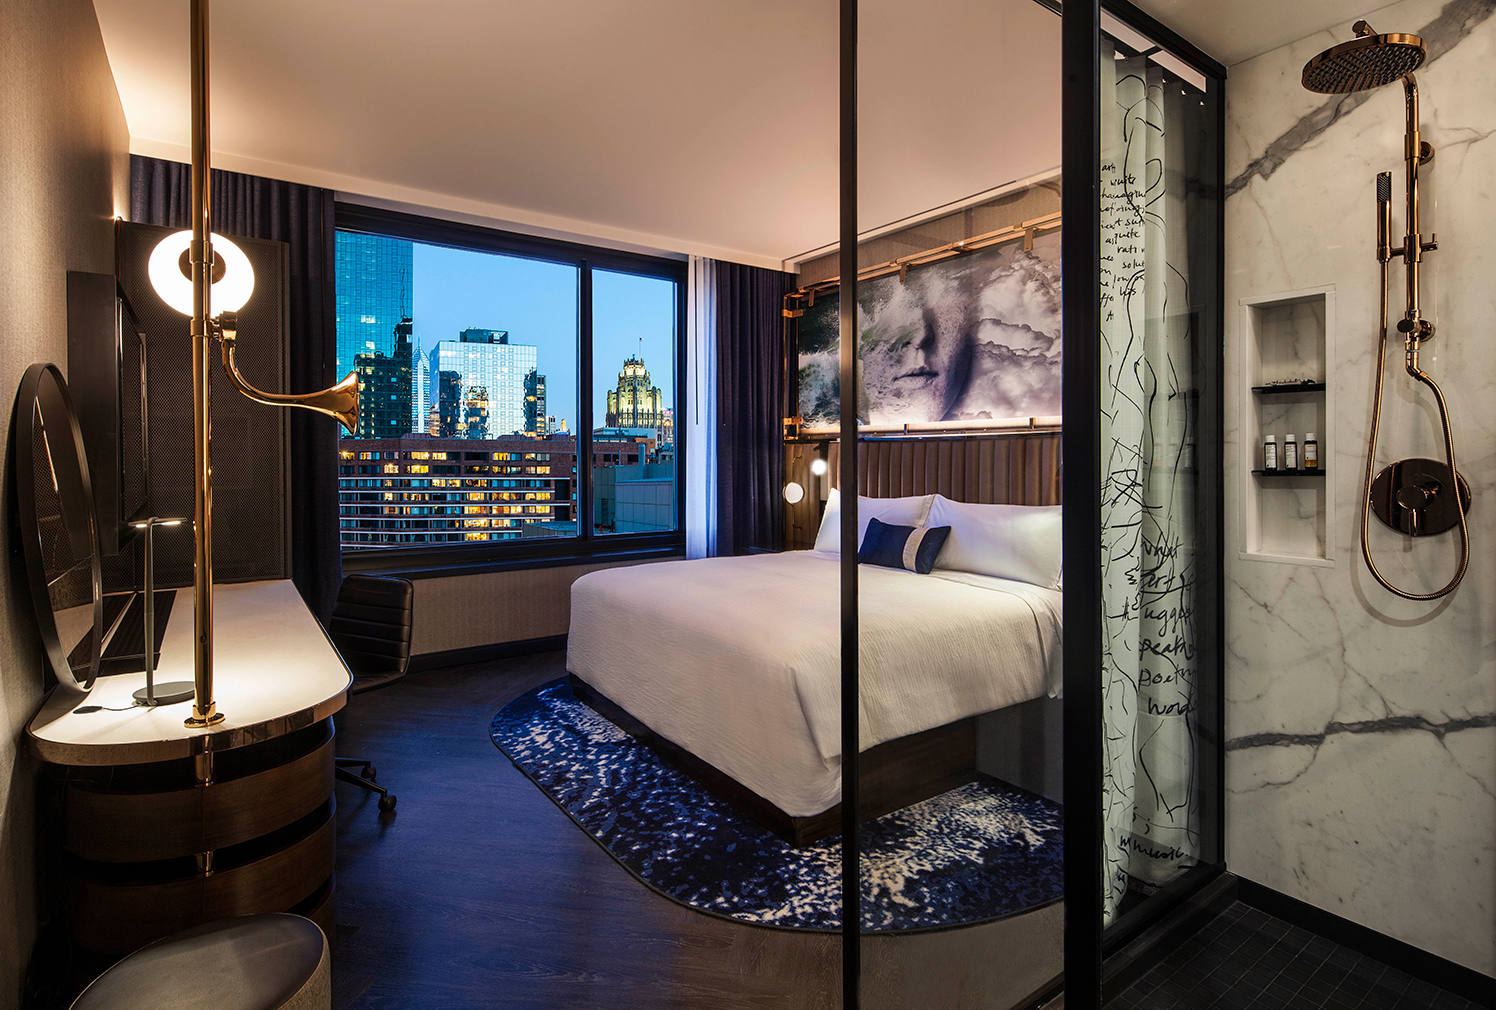 Chicago S Hotel Emc2 Has Science Themed Interiors By